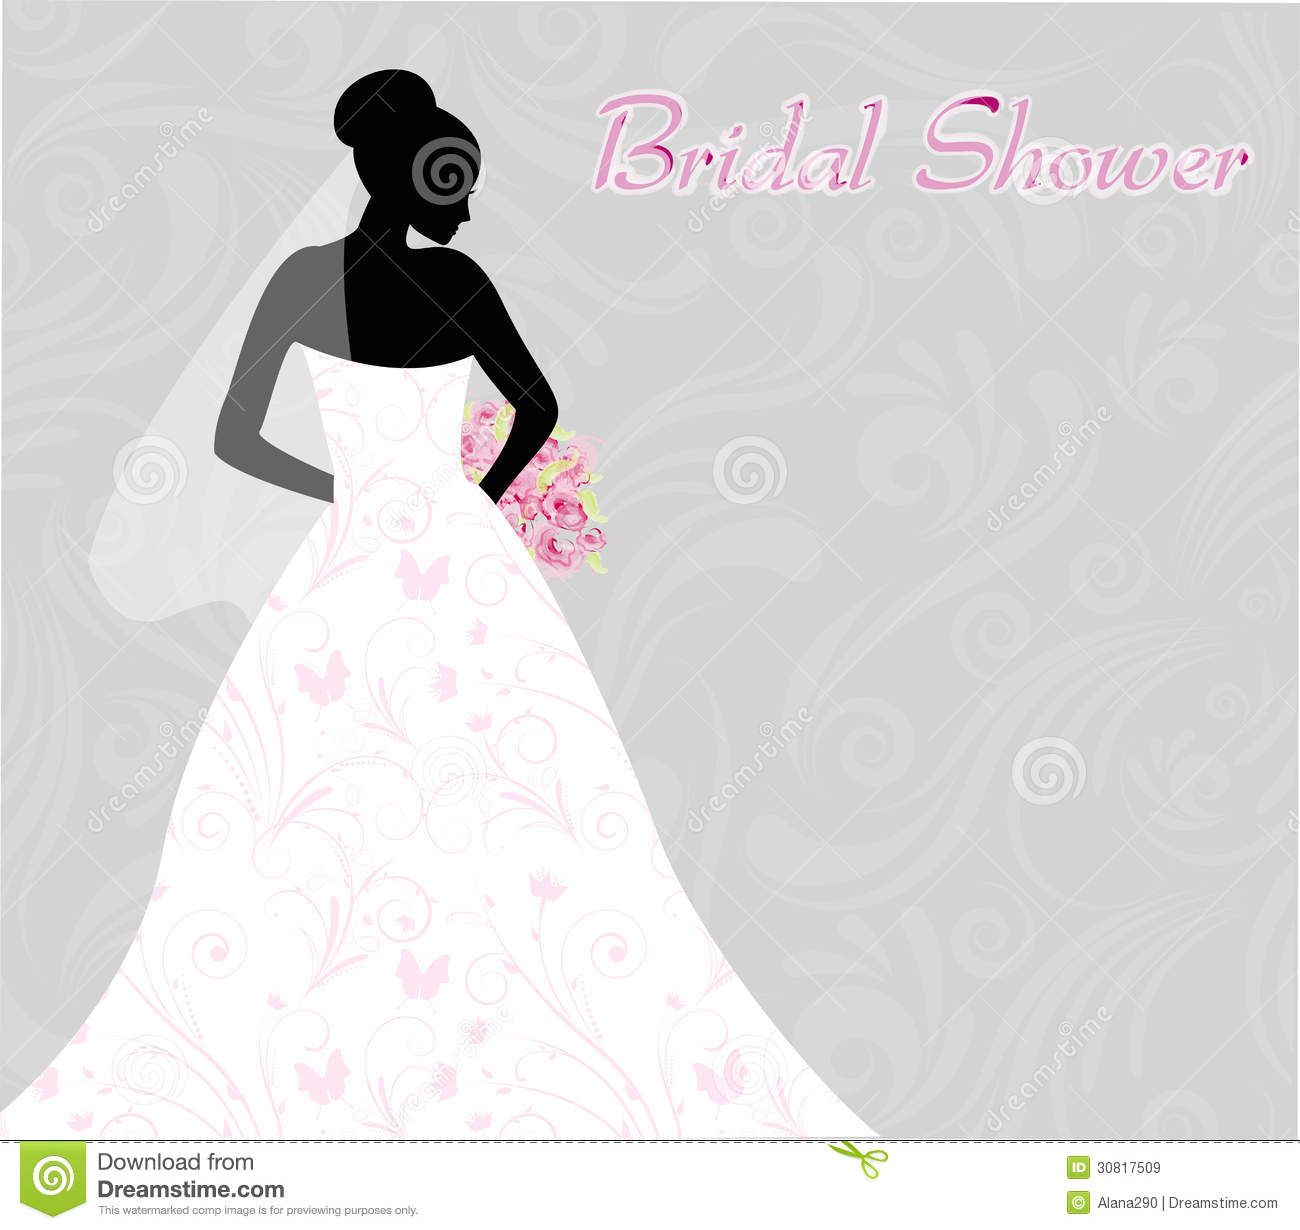 bridal shower invitation with brides silhouette on swirls light background royalty free illustration